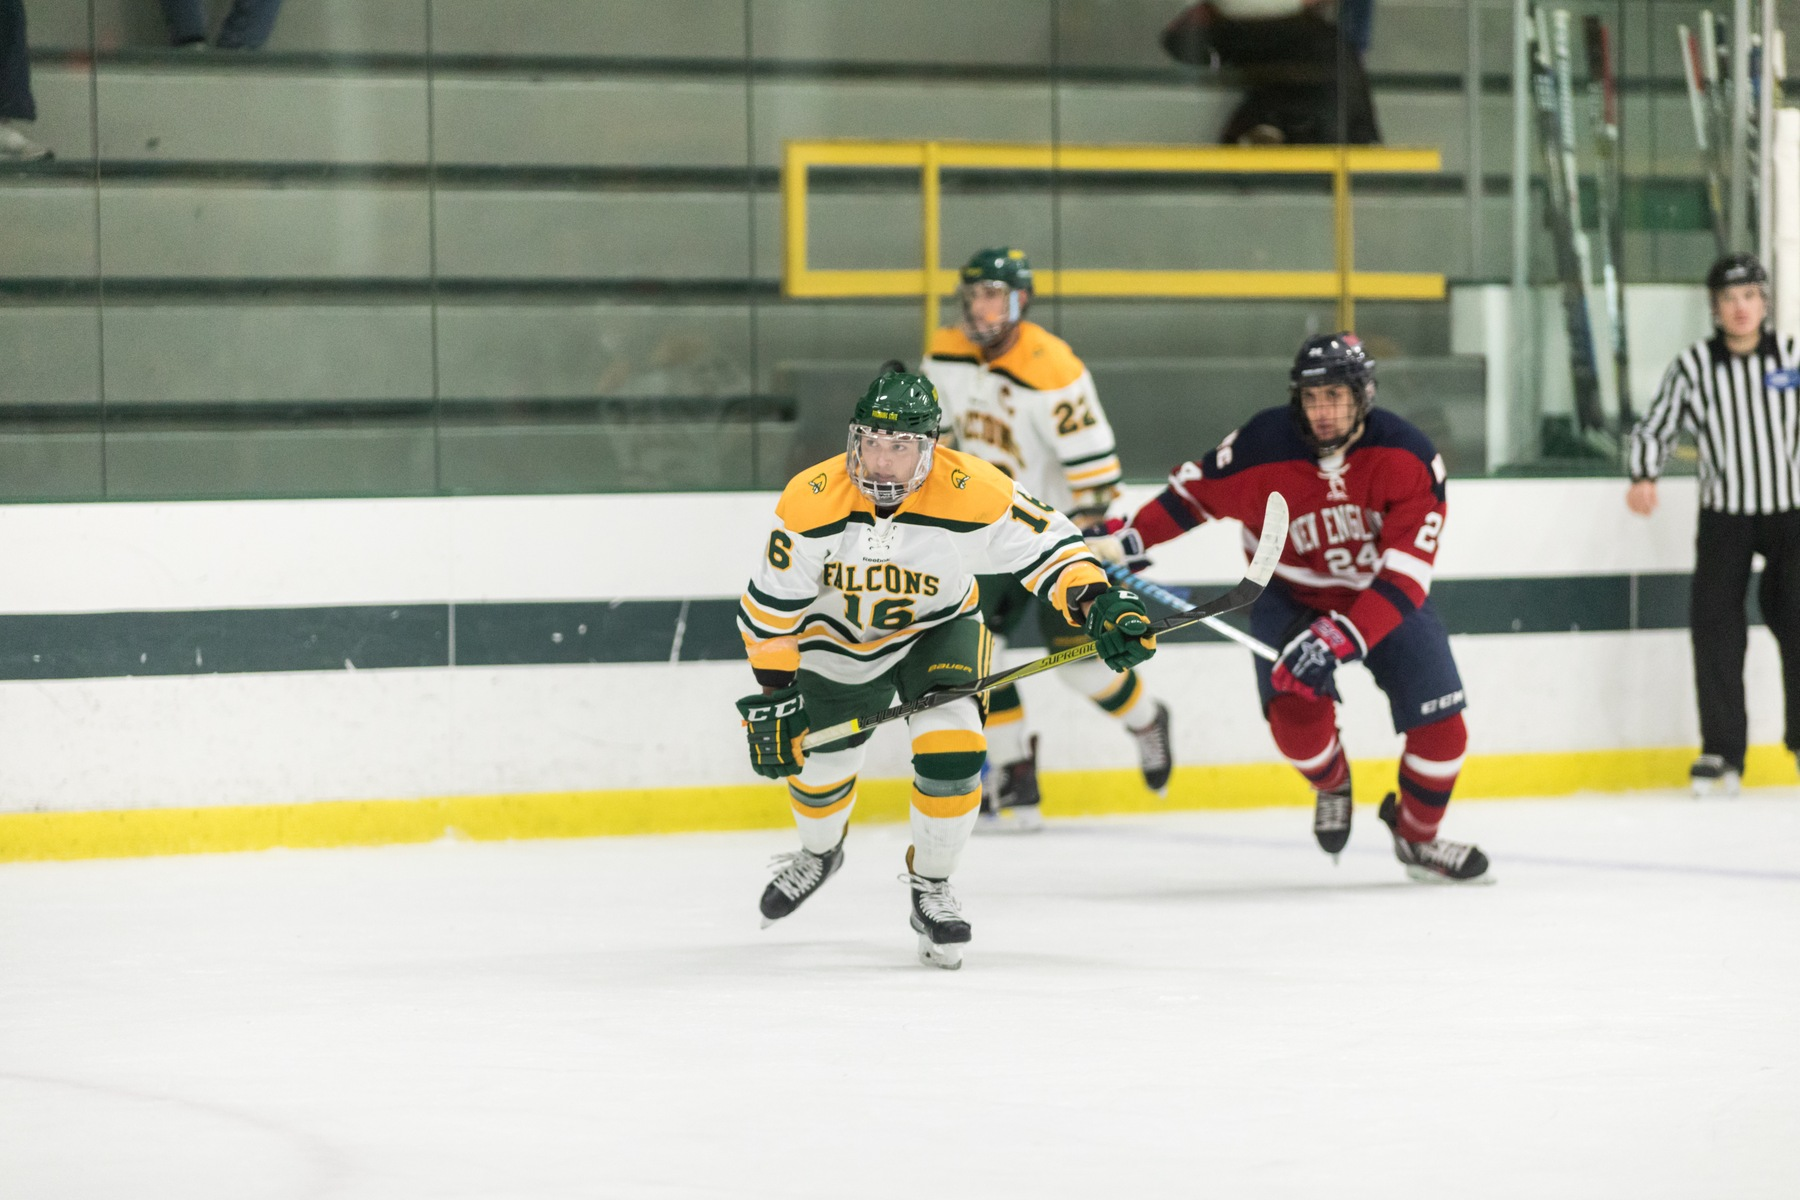 Falcons Fall to Plymouth State, 5-3